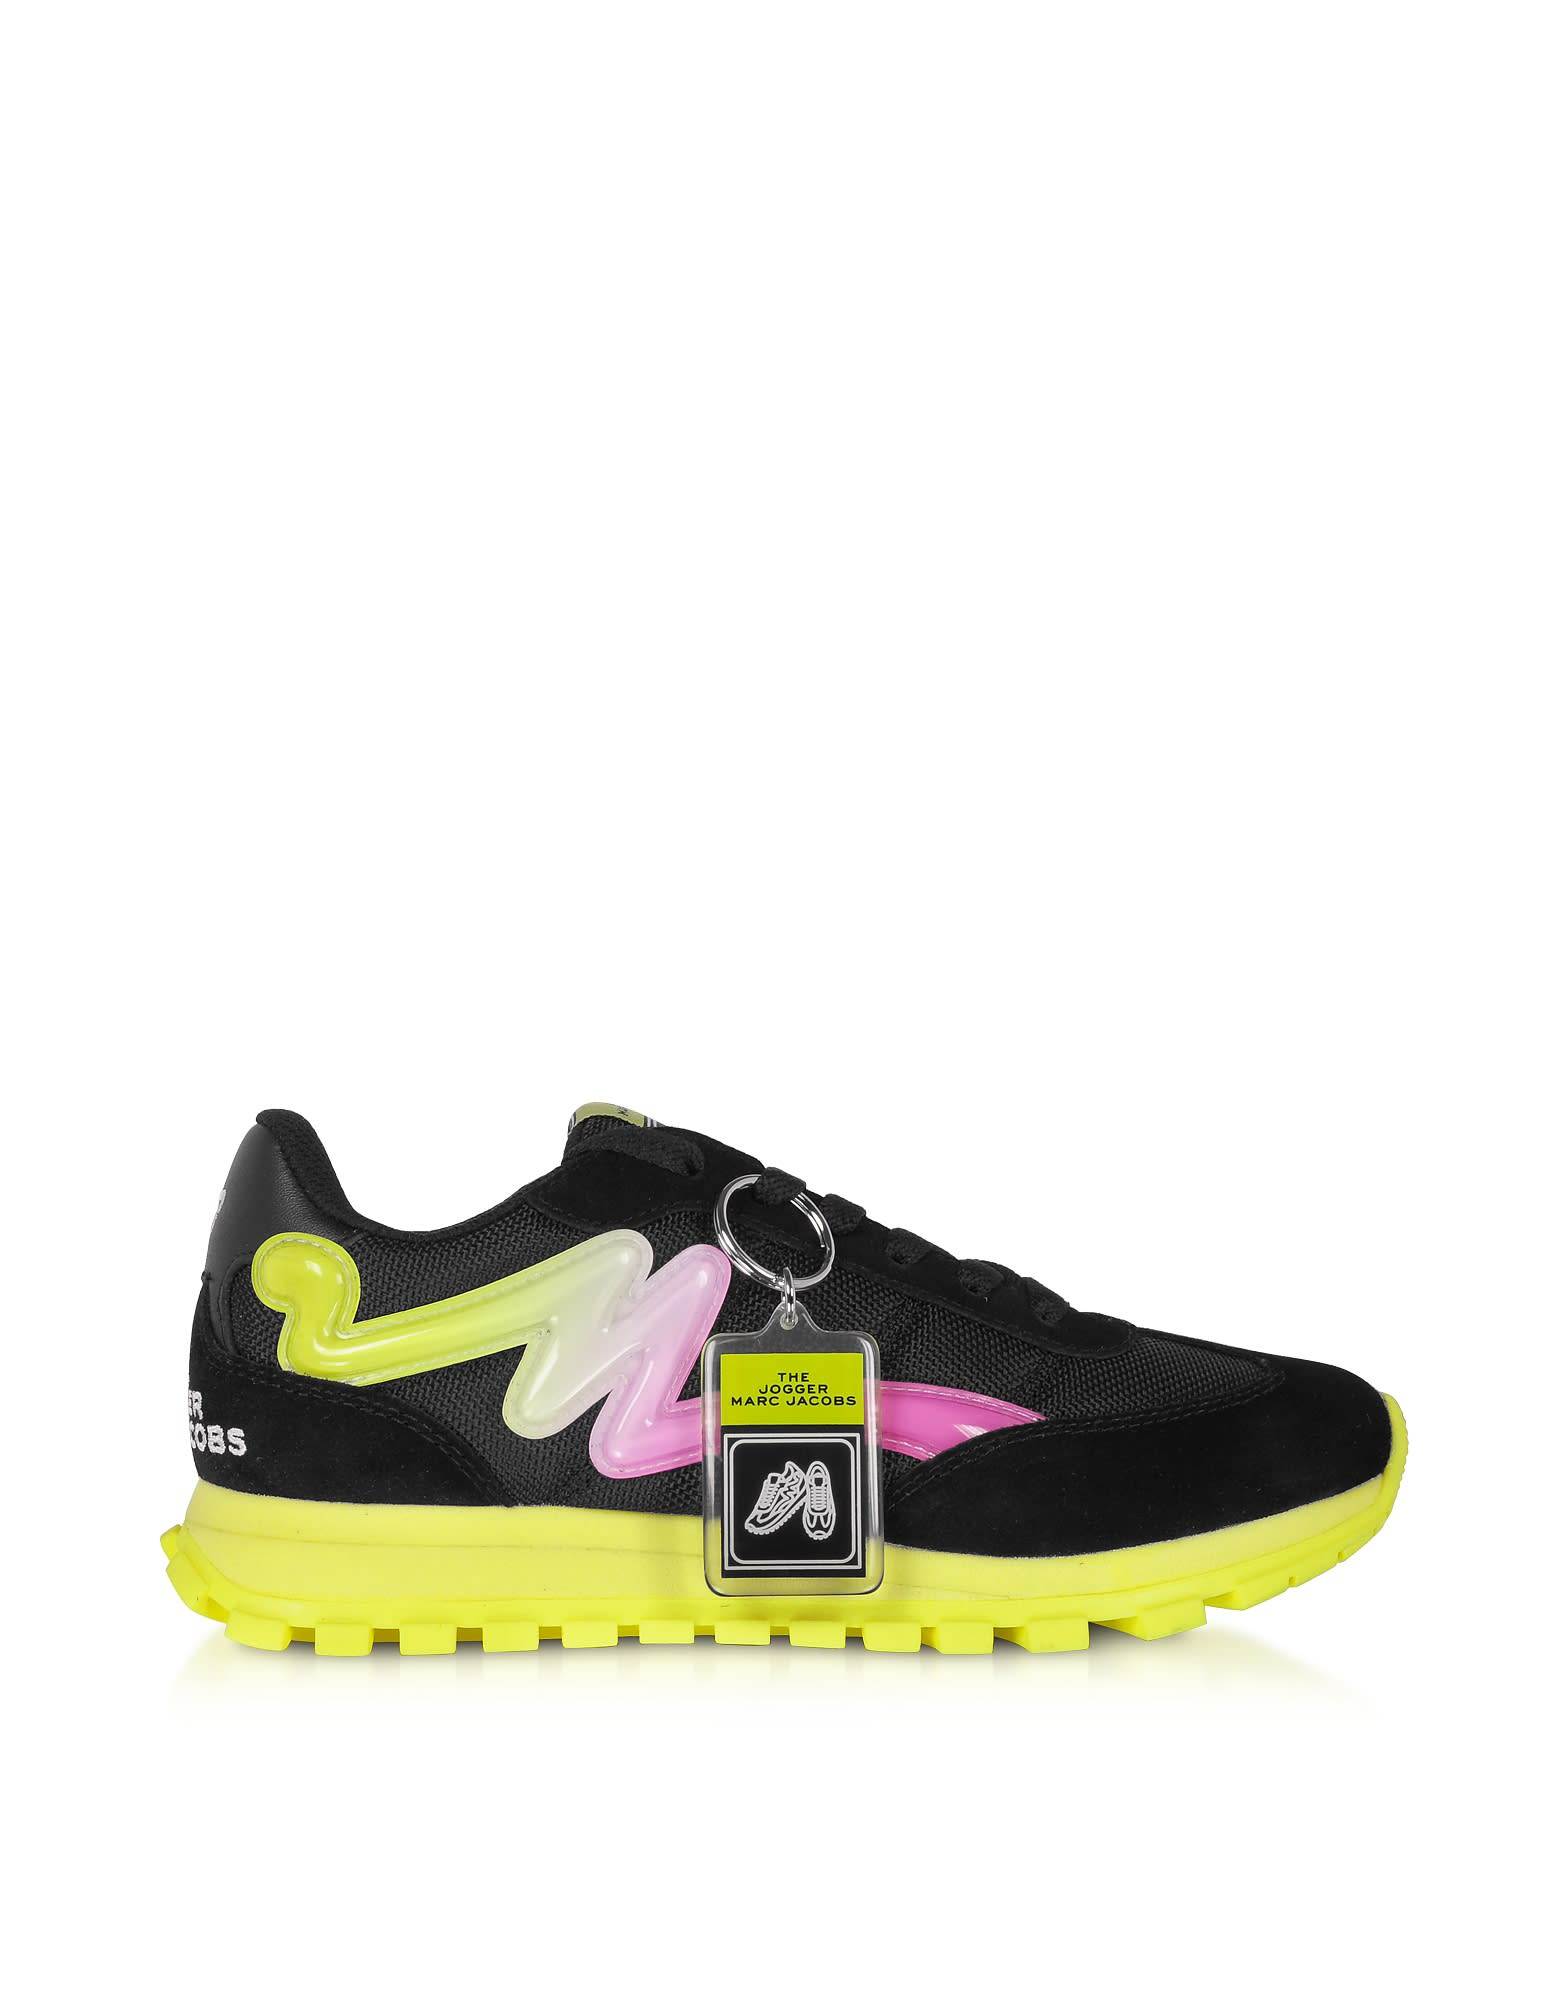 Marc Jacobs The Jogger Black & Neon Nylon Womens Sneakers